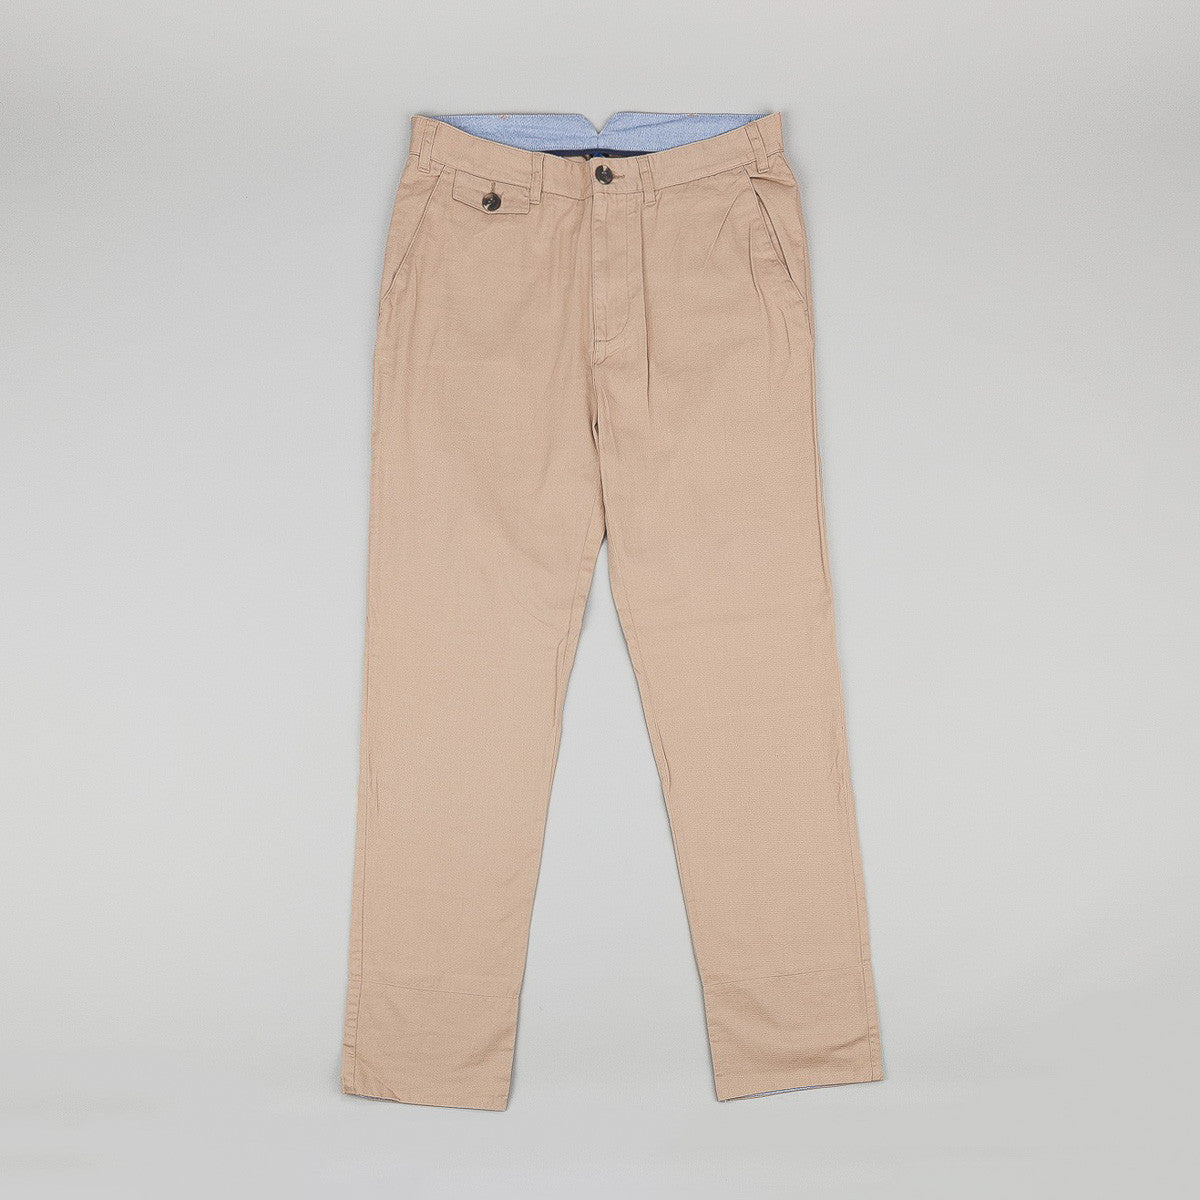 Penfield Millwood Pants - Beige